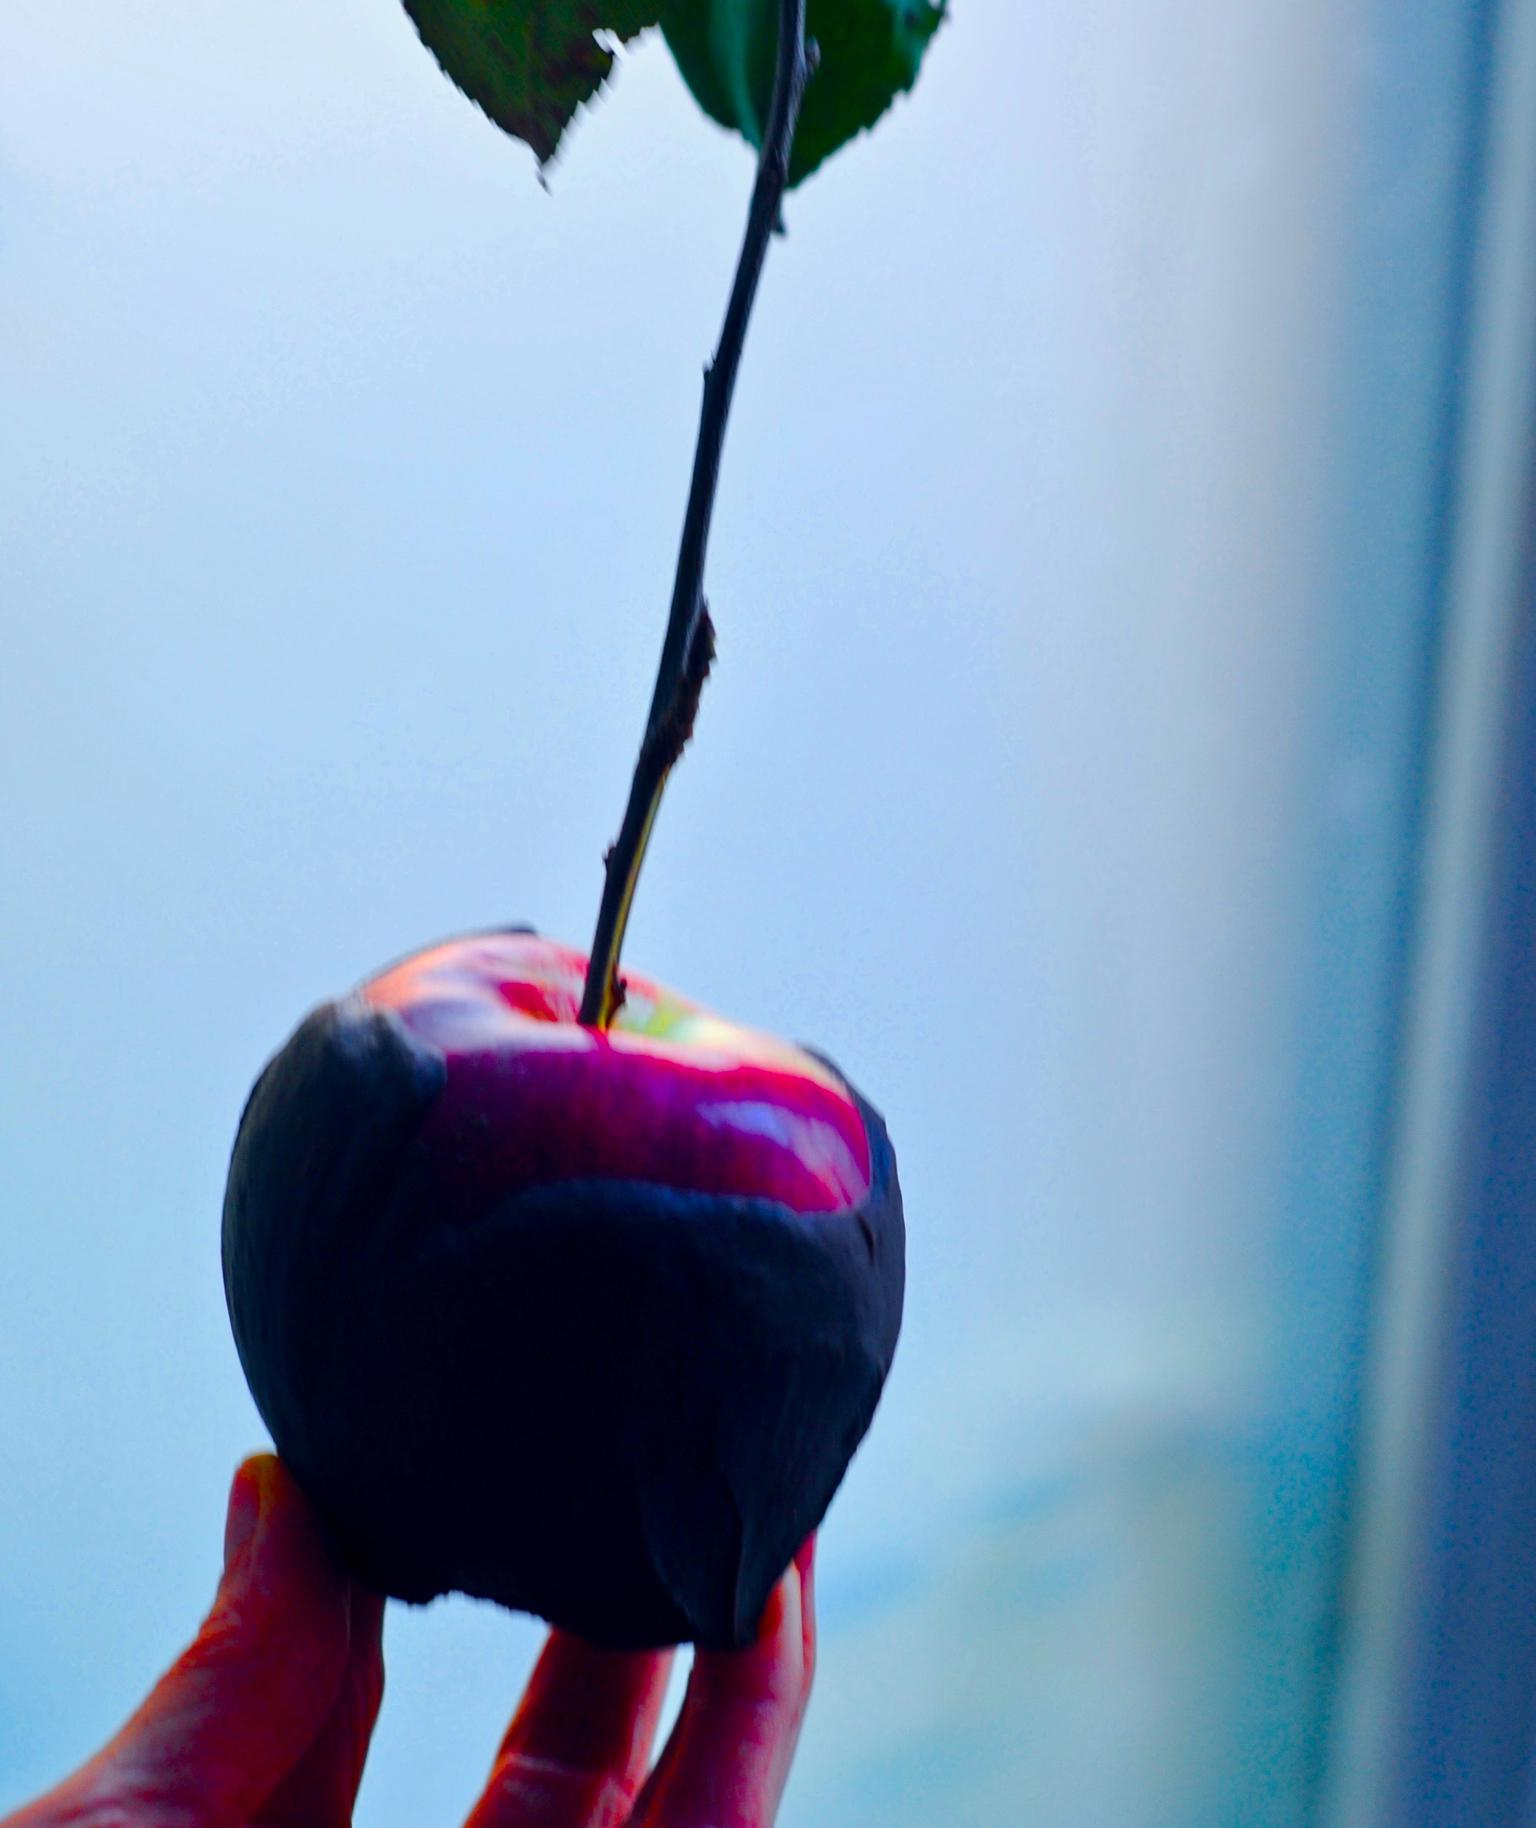 How To Make Chocolate Poison Apples For Halloween, Vegan